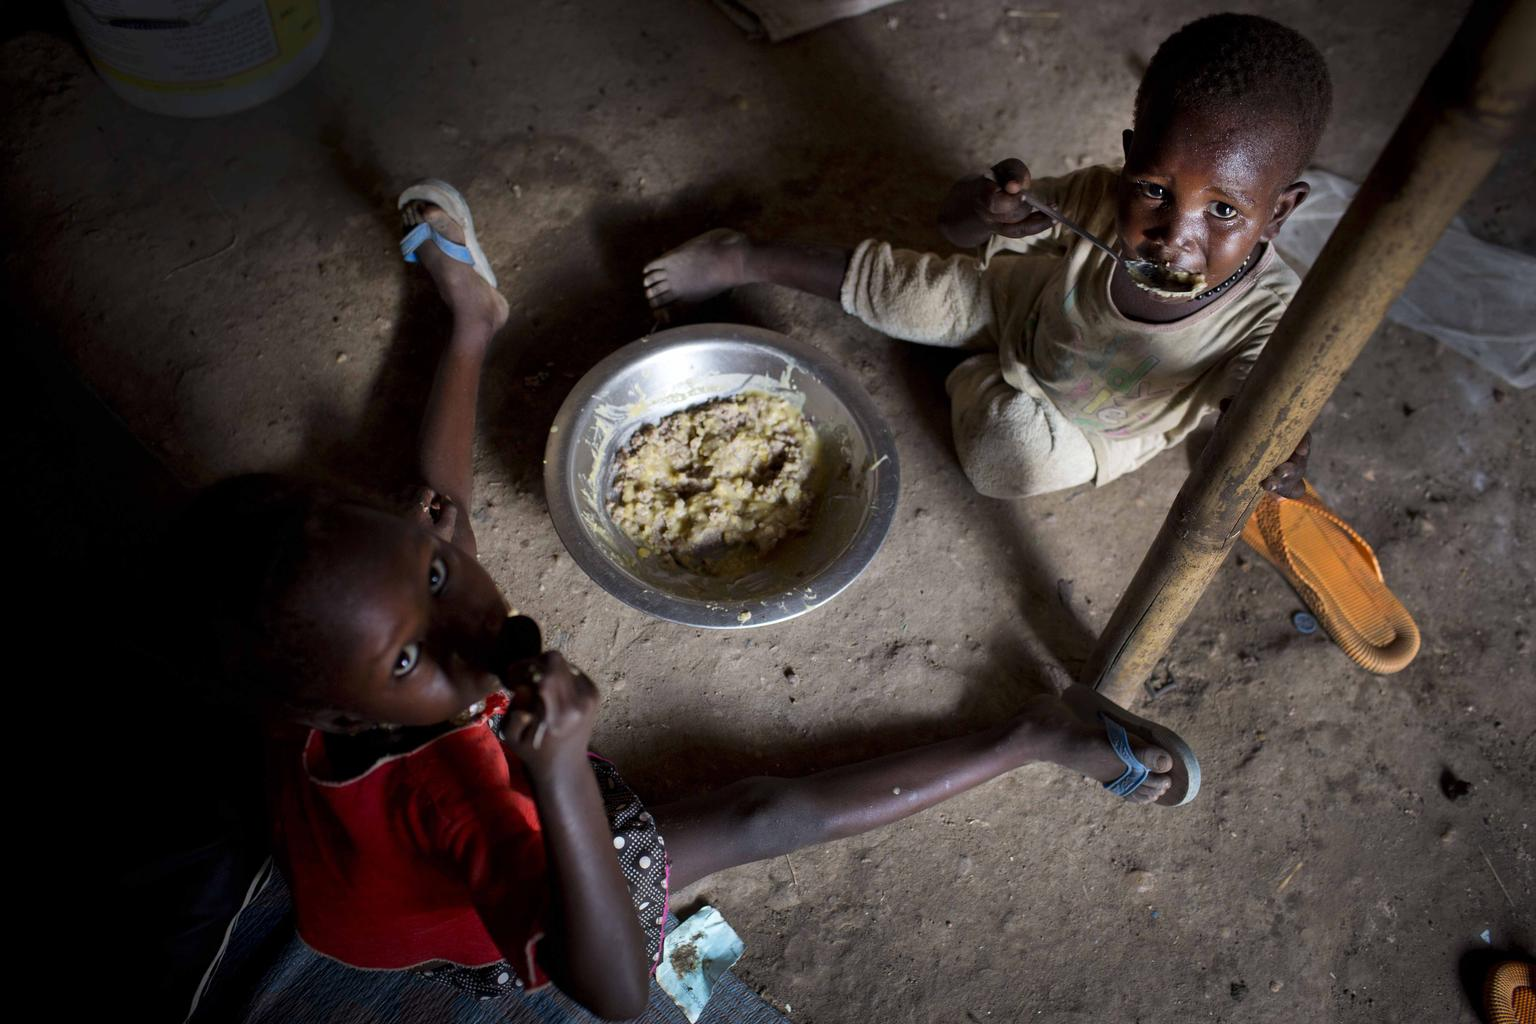 Children displaced by recent fighting eat their daily meal at a displacement site in Juba. © UNICEF/NYHQ2014-0344/Kate Holt